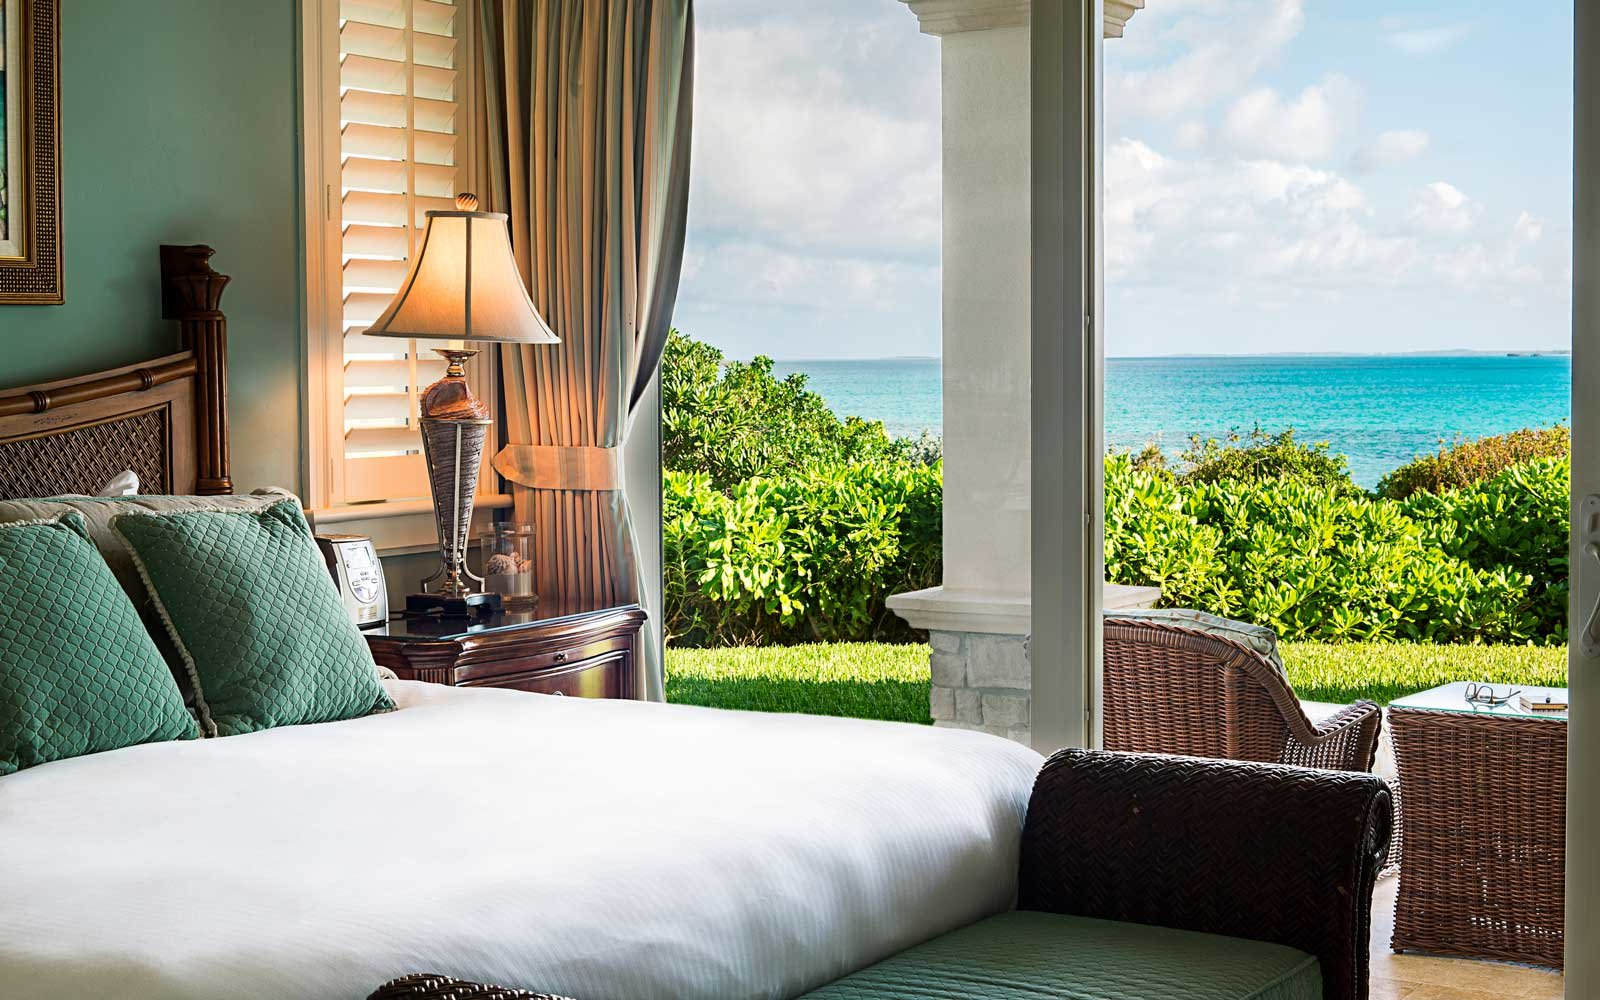 Guest room at the Grand Isle Resort & Spa